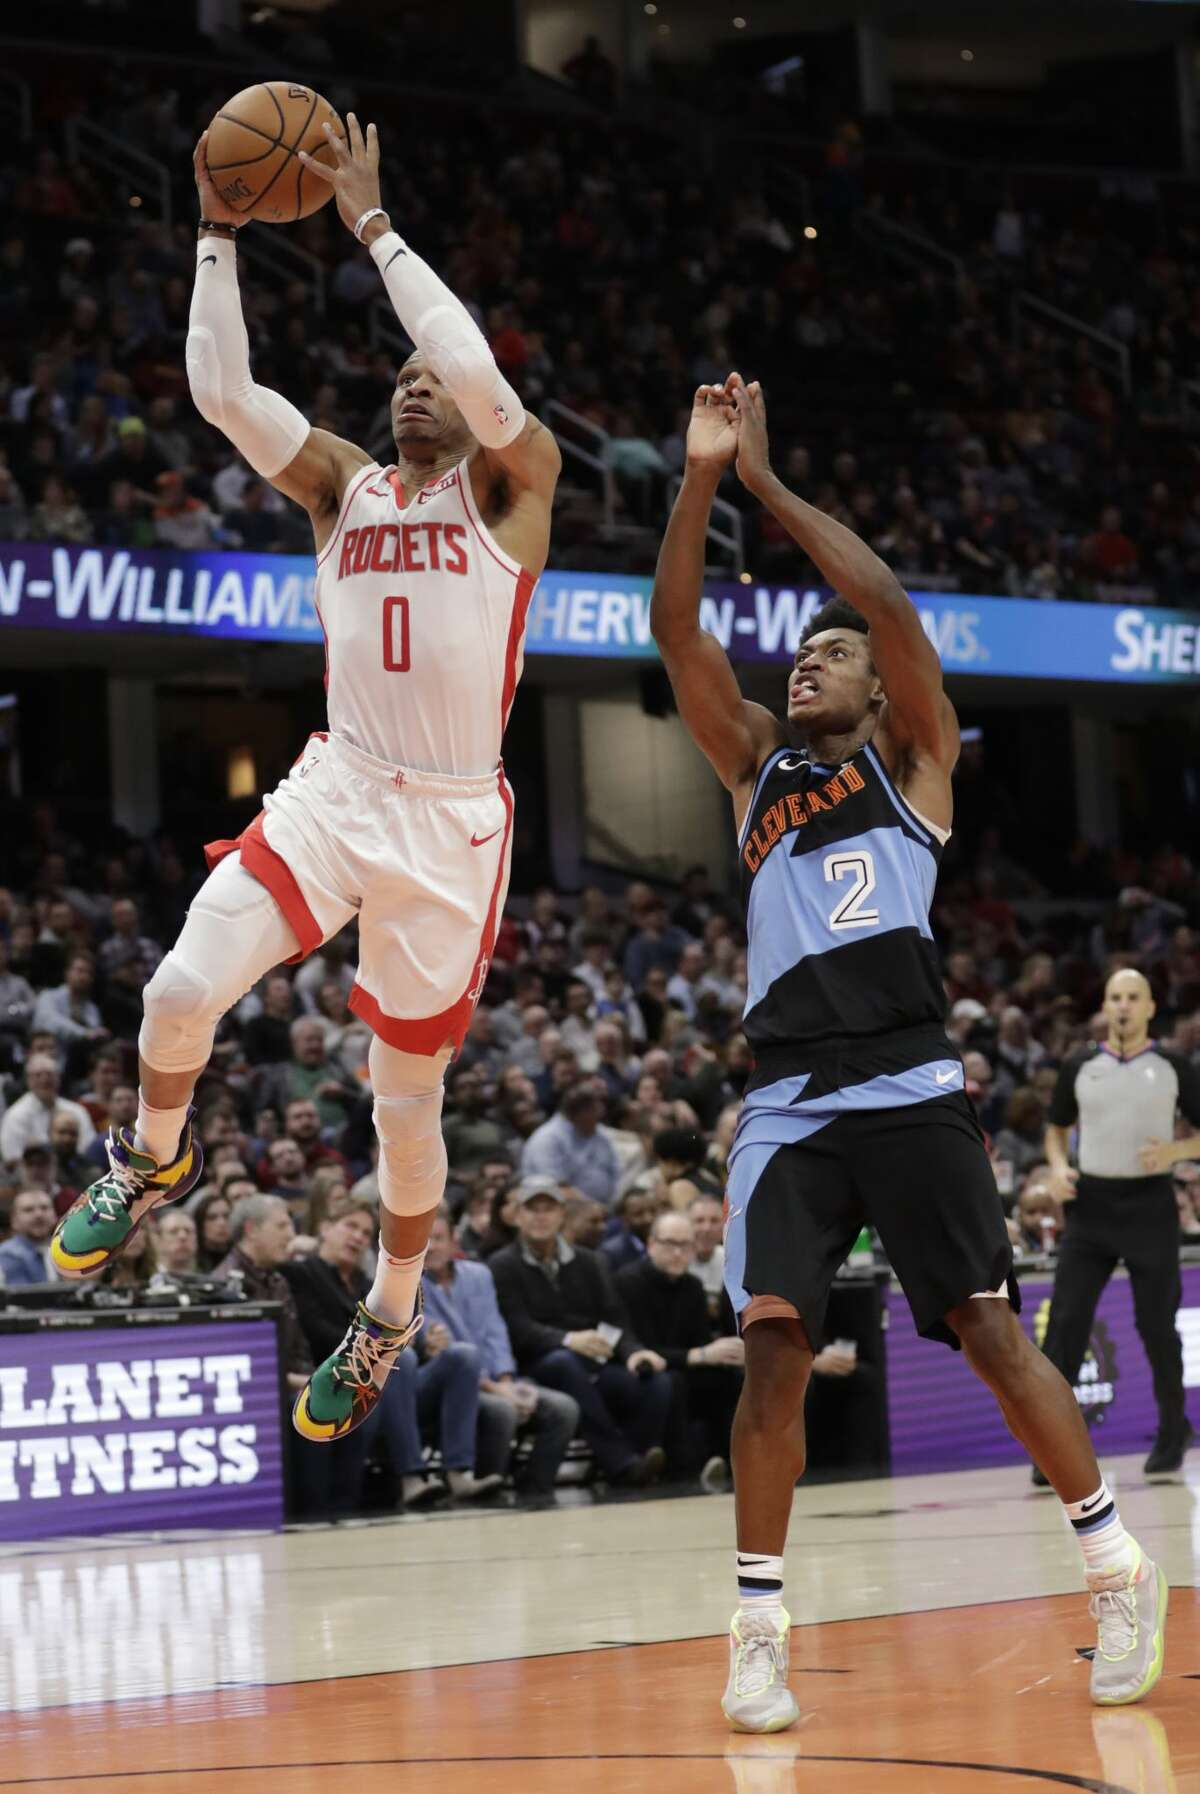 Houston Rockets' Russell Westbrook (0) drives to the basket against Cleveland Cavaliers' Collin Sexton (2) in the second half of an NBA basketball game, Wednesday, Dec. 11, 2019, in Cleveland. (AP Photo/Tony Dejak)